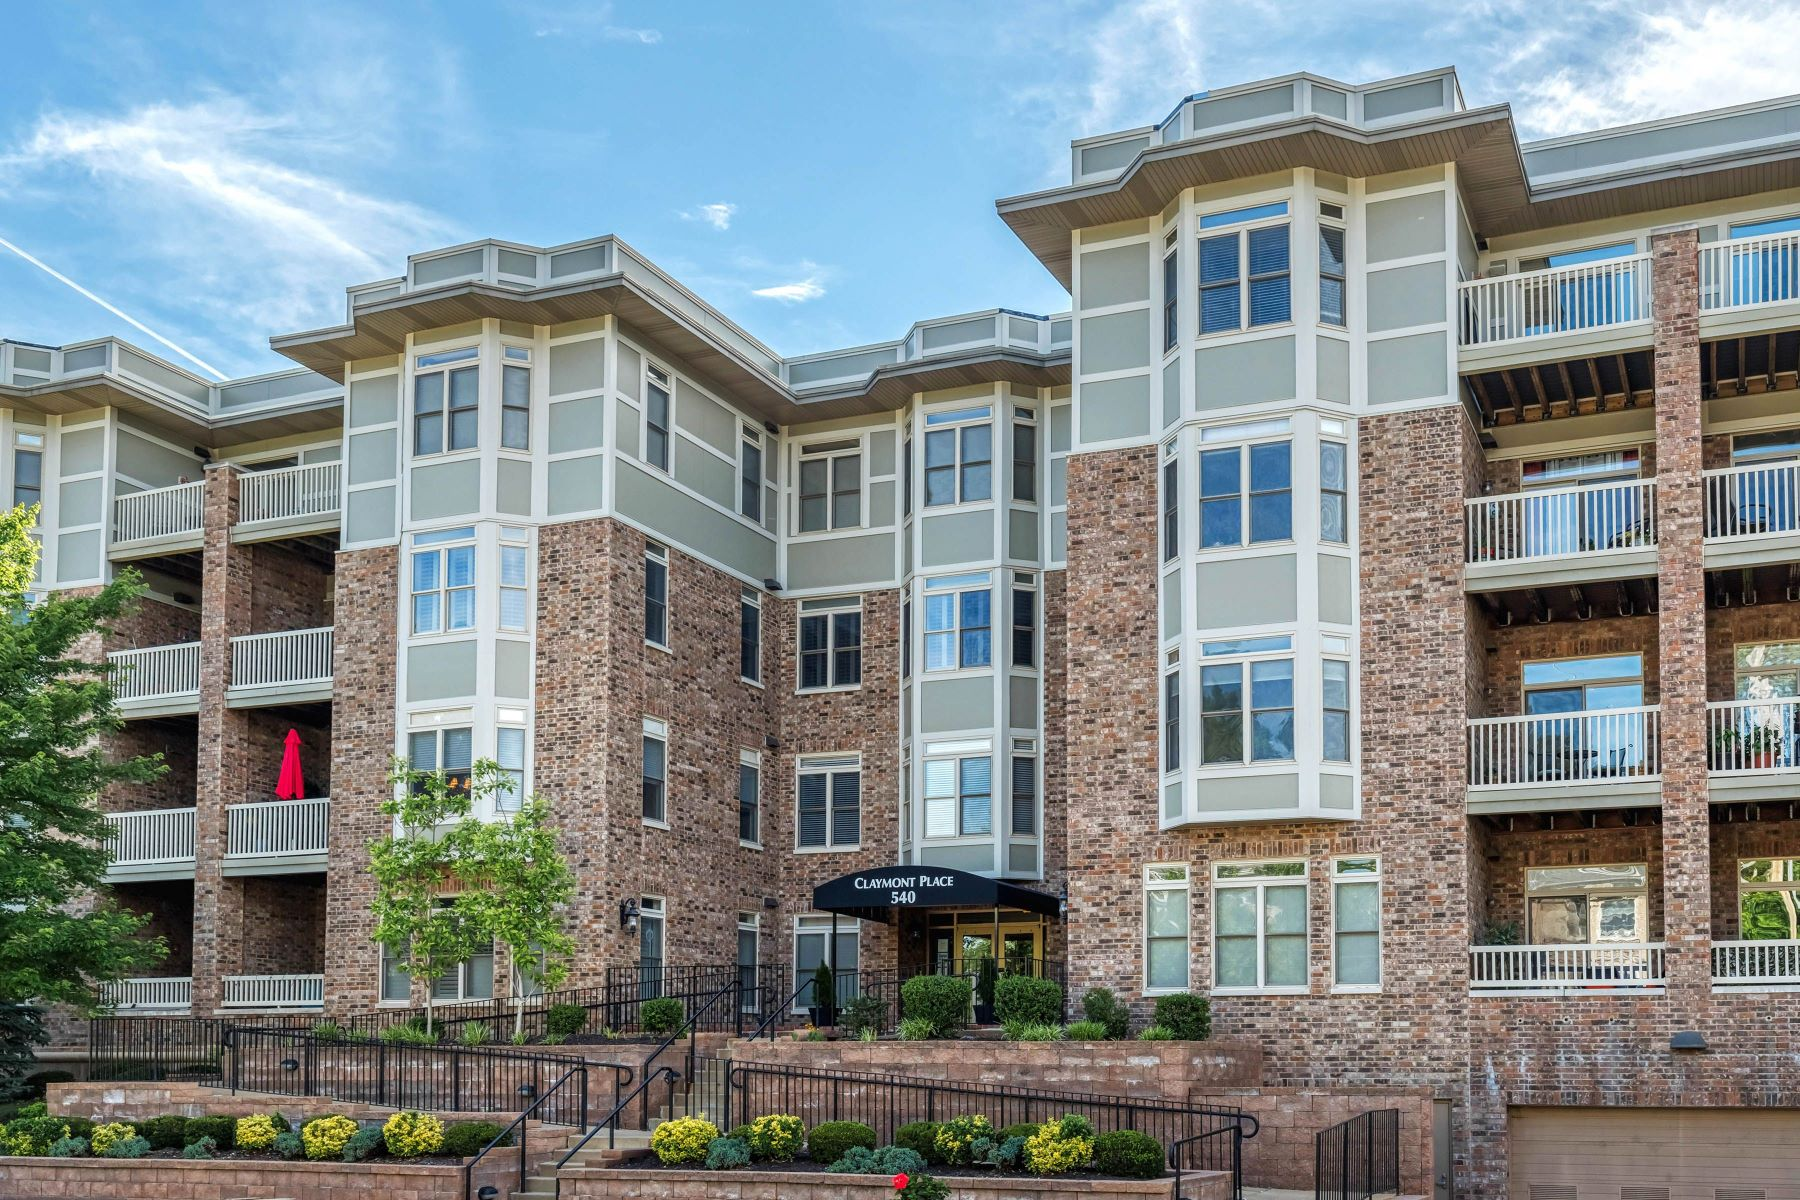 Condominiums for Sale at Popular Claymont Place Condominium 540 North and South Road, #104 University City, Missouri 63130 United States